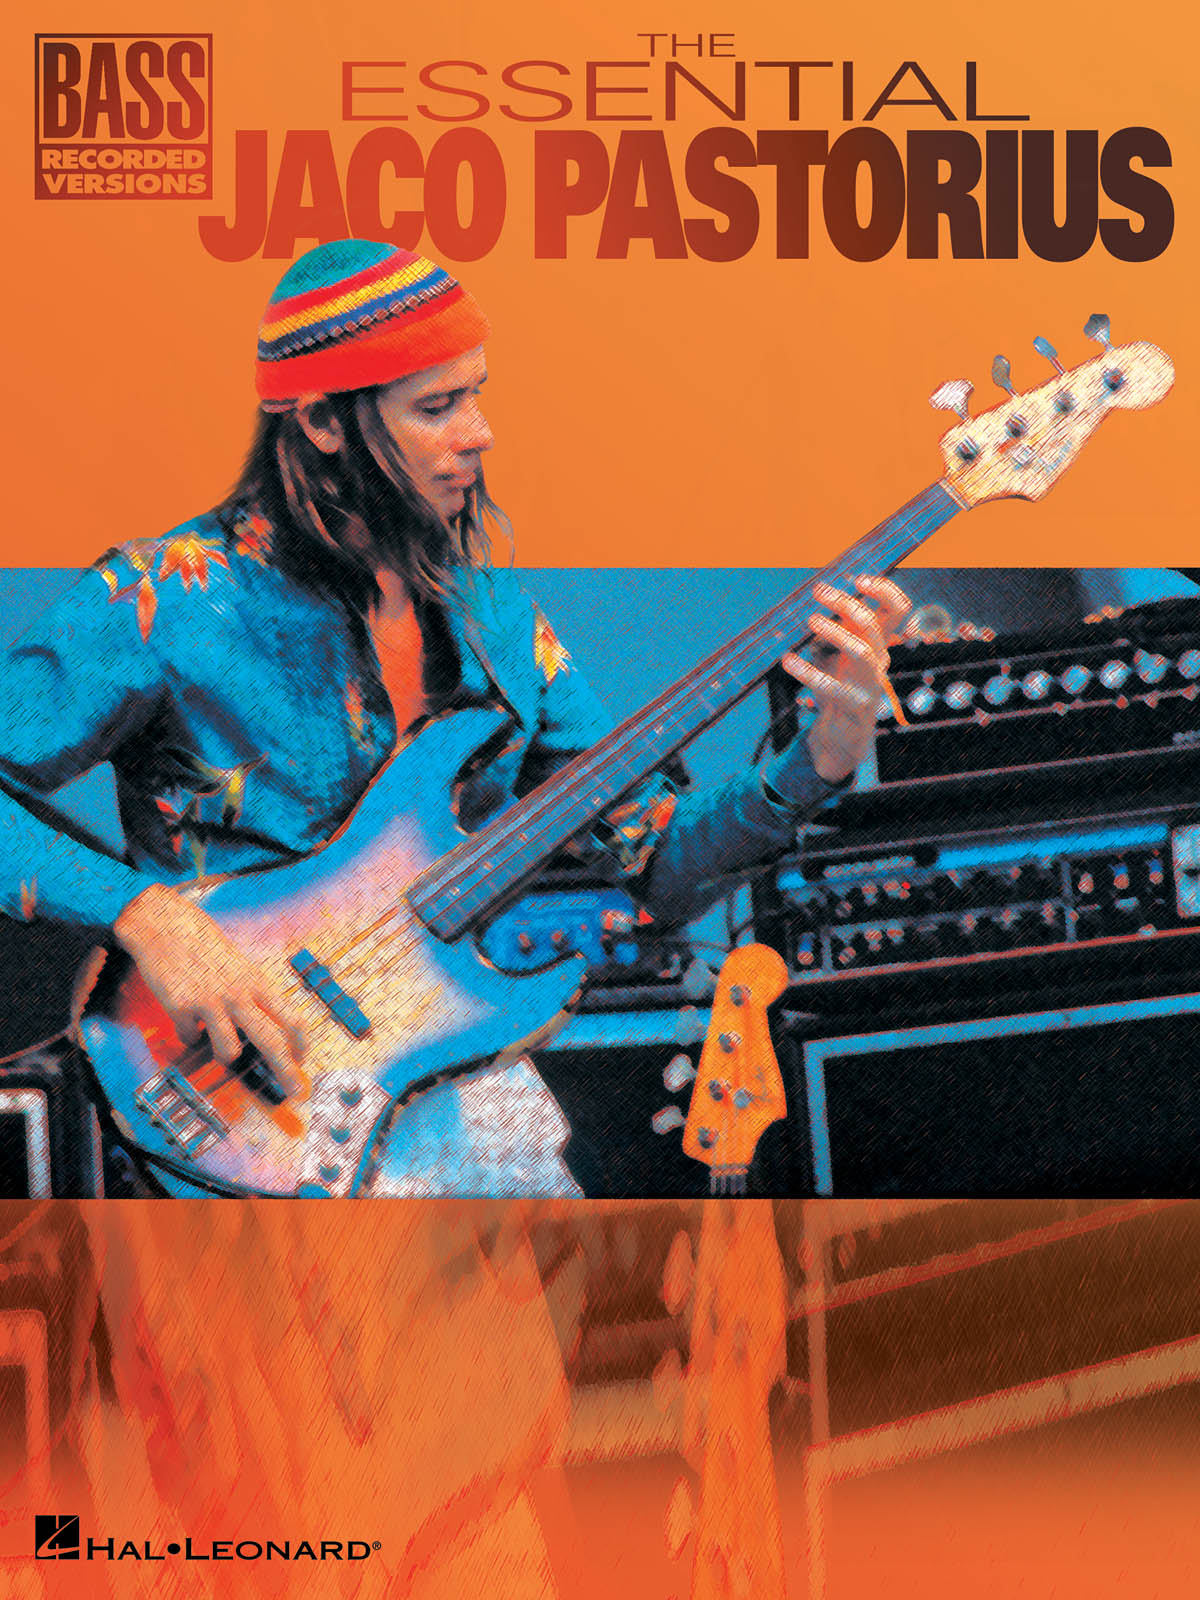 The Essential Jaco Pastorius (Bass Recorded Versions)